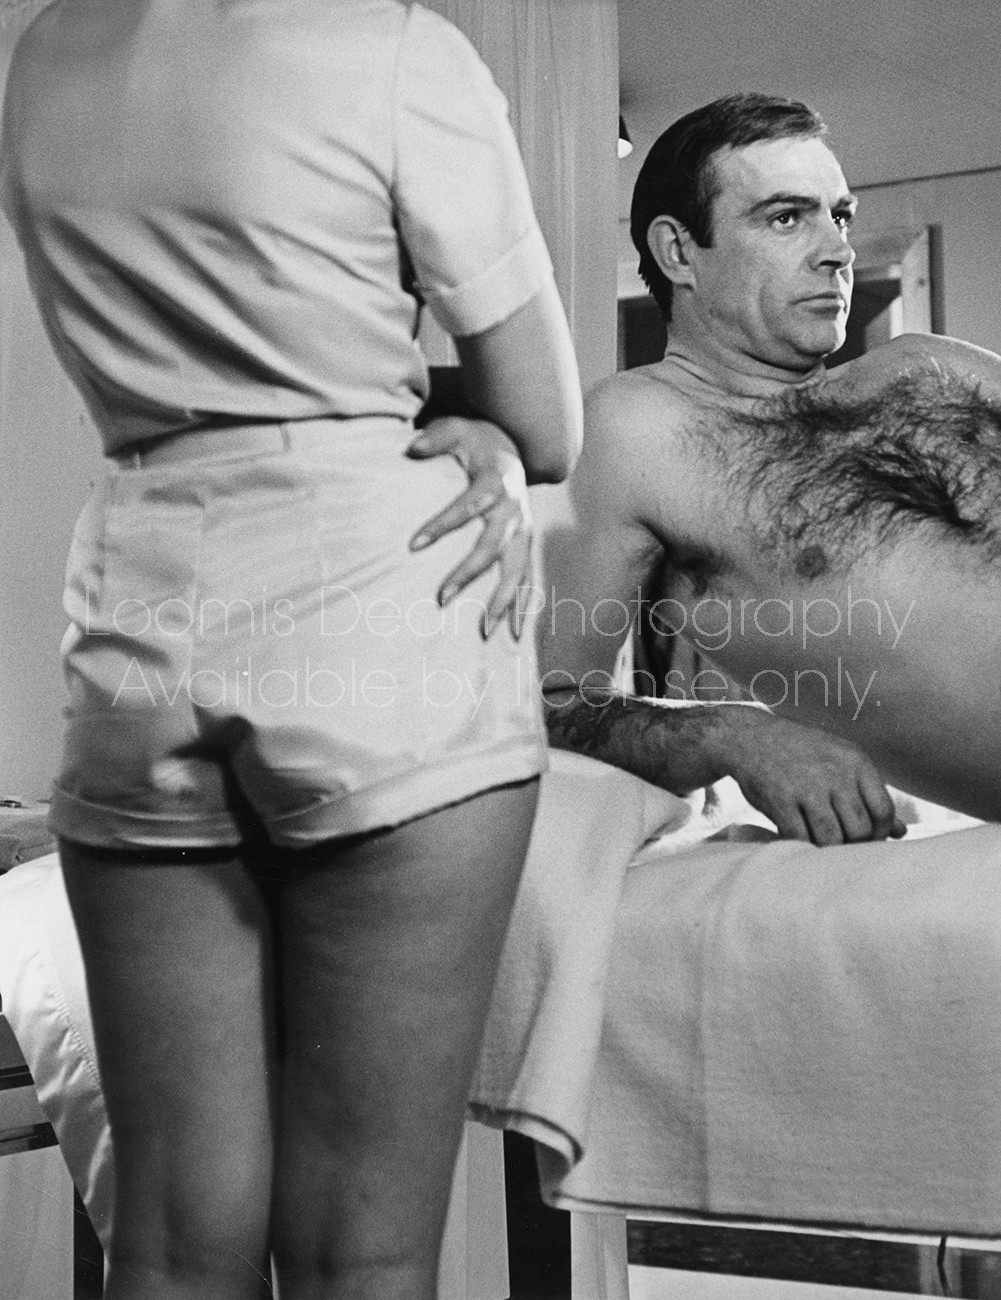 ACTOR SEAN CONNERY IN SCENE FROM THUNDERBALL 001